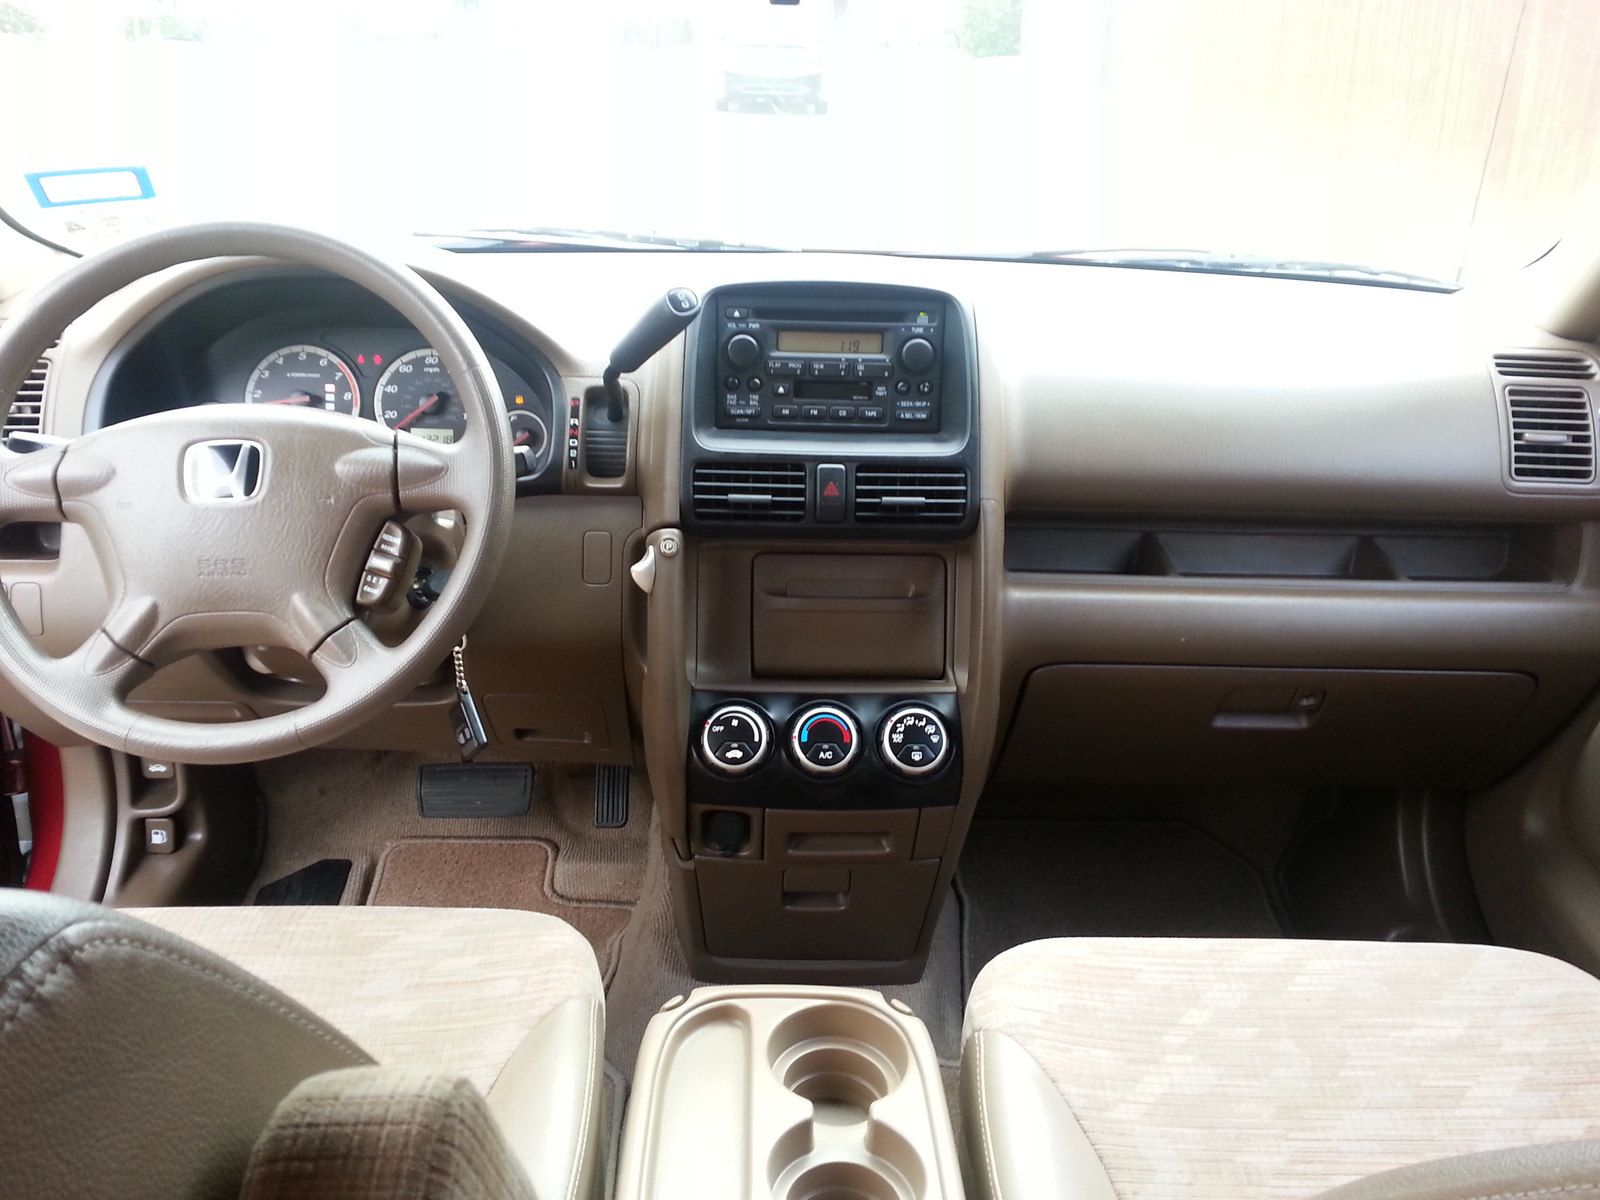 Hpim together with F E E B D Cafb E A together with Honda Accord Ex Pic X as well Img Hoged further Honda Cr V Lx Awd Pic. on 2003 honda s2000 price